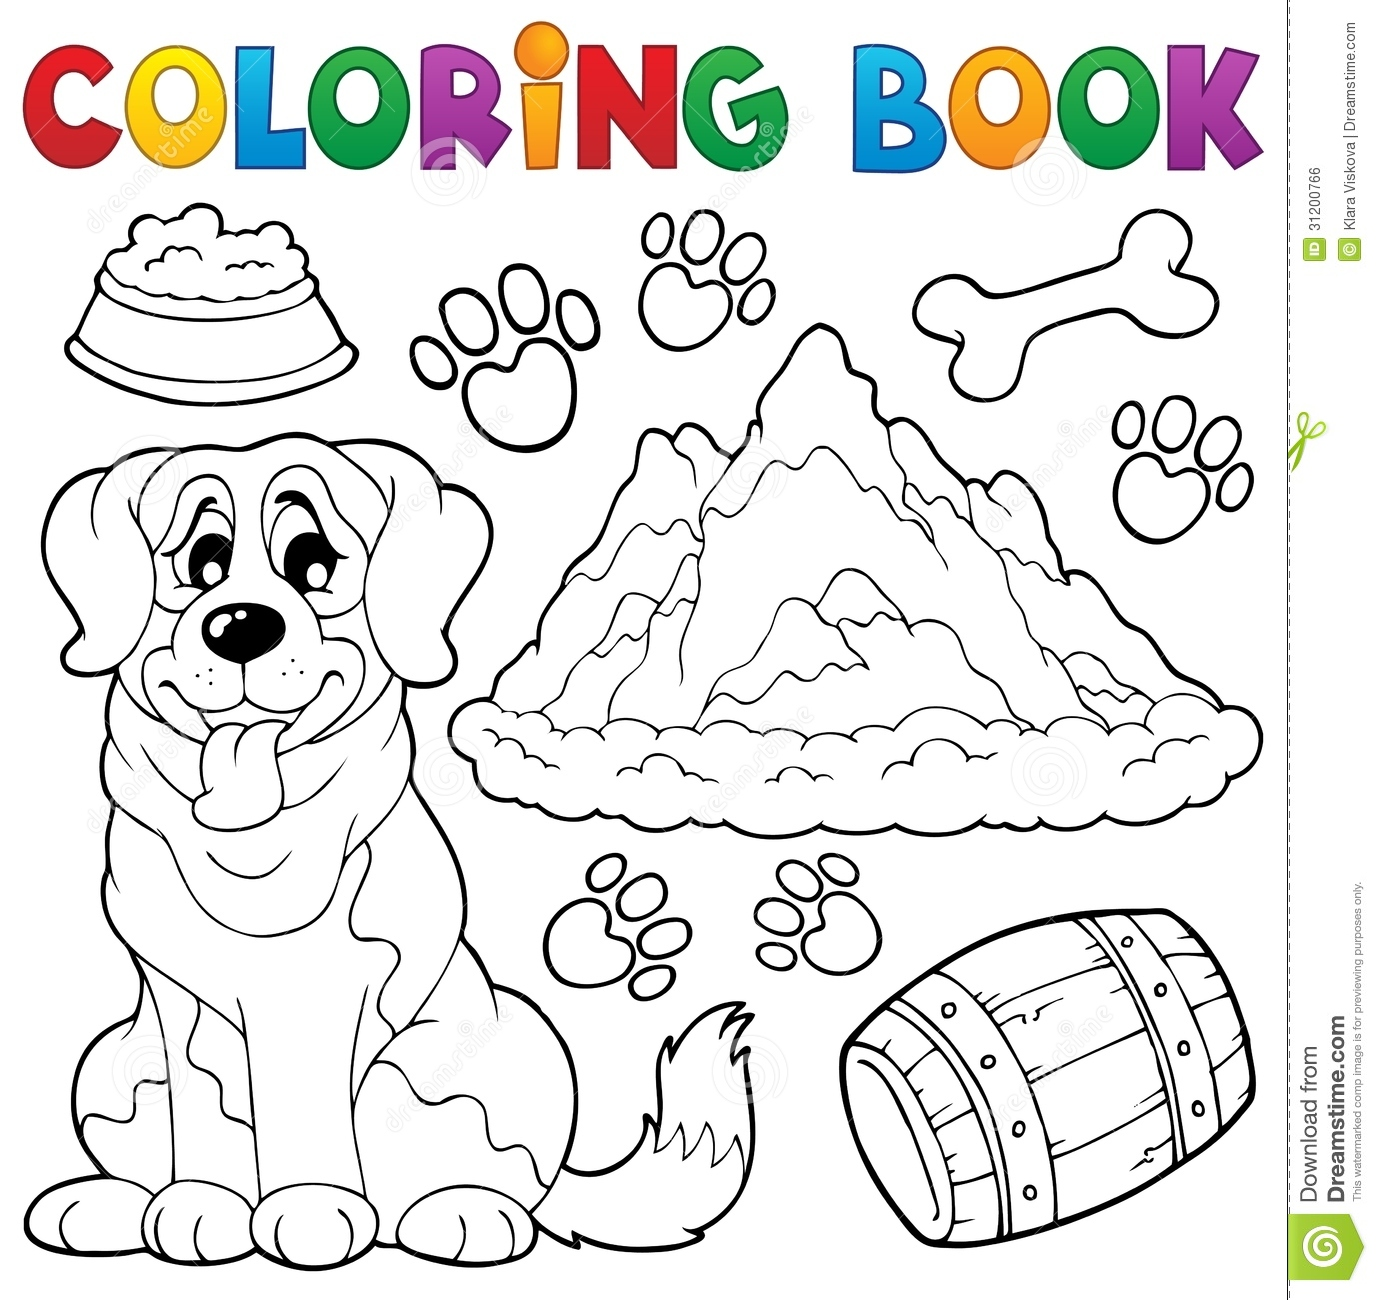 Coloring pages vector - Free Coloring Pages Vector Free Coloring Pages Vector Co Coloring Book Free Download Coloring Pages